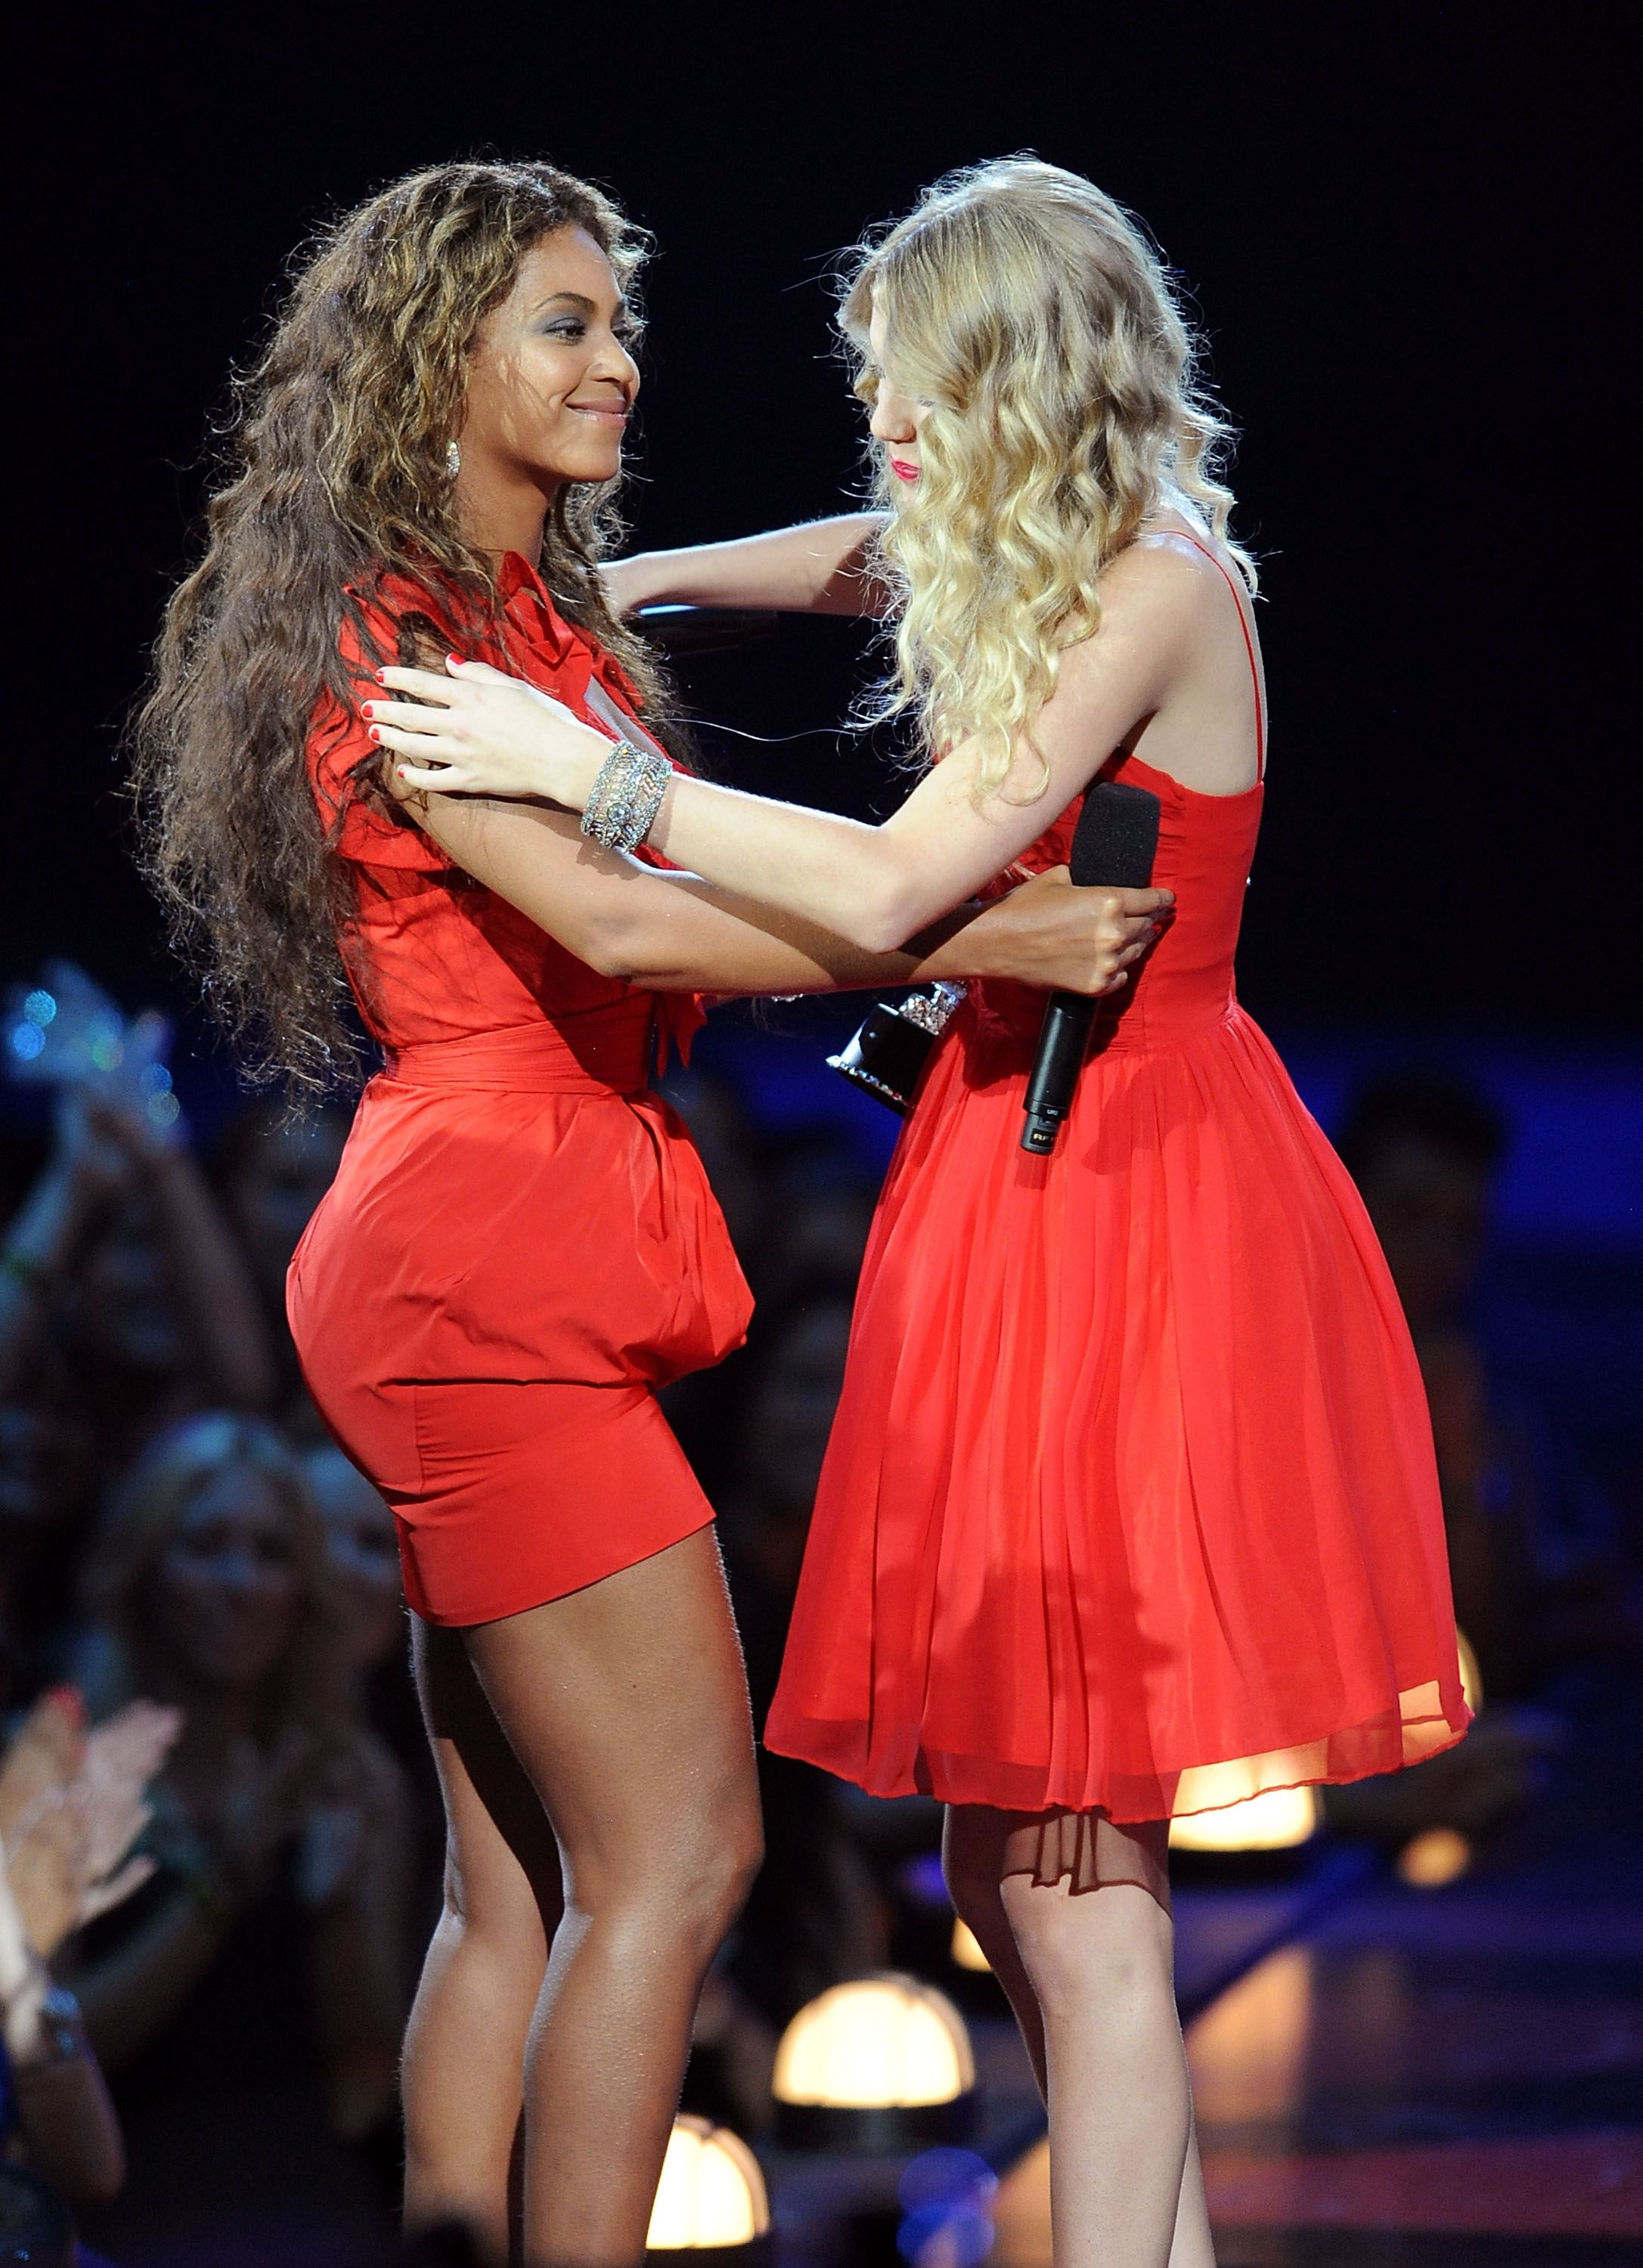 Beyoncé and Taylor Swift Both Cried After Kanye West's Interruption at the 2009 MTV VMAs